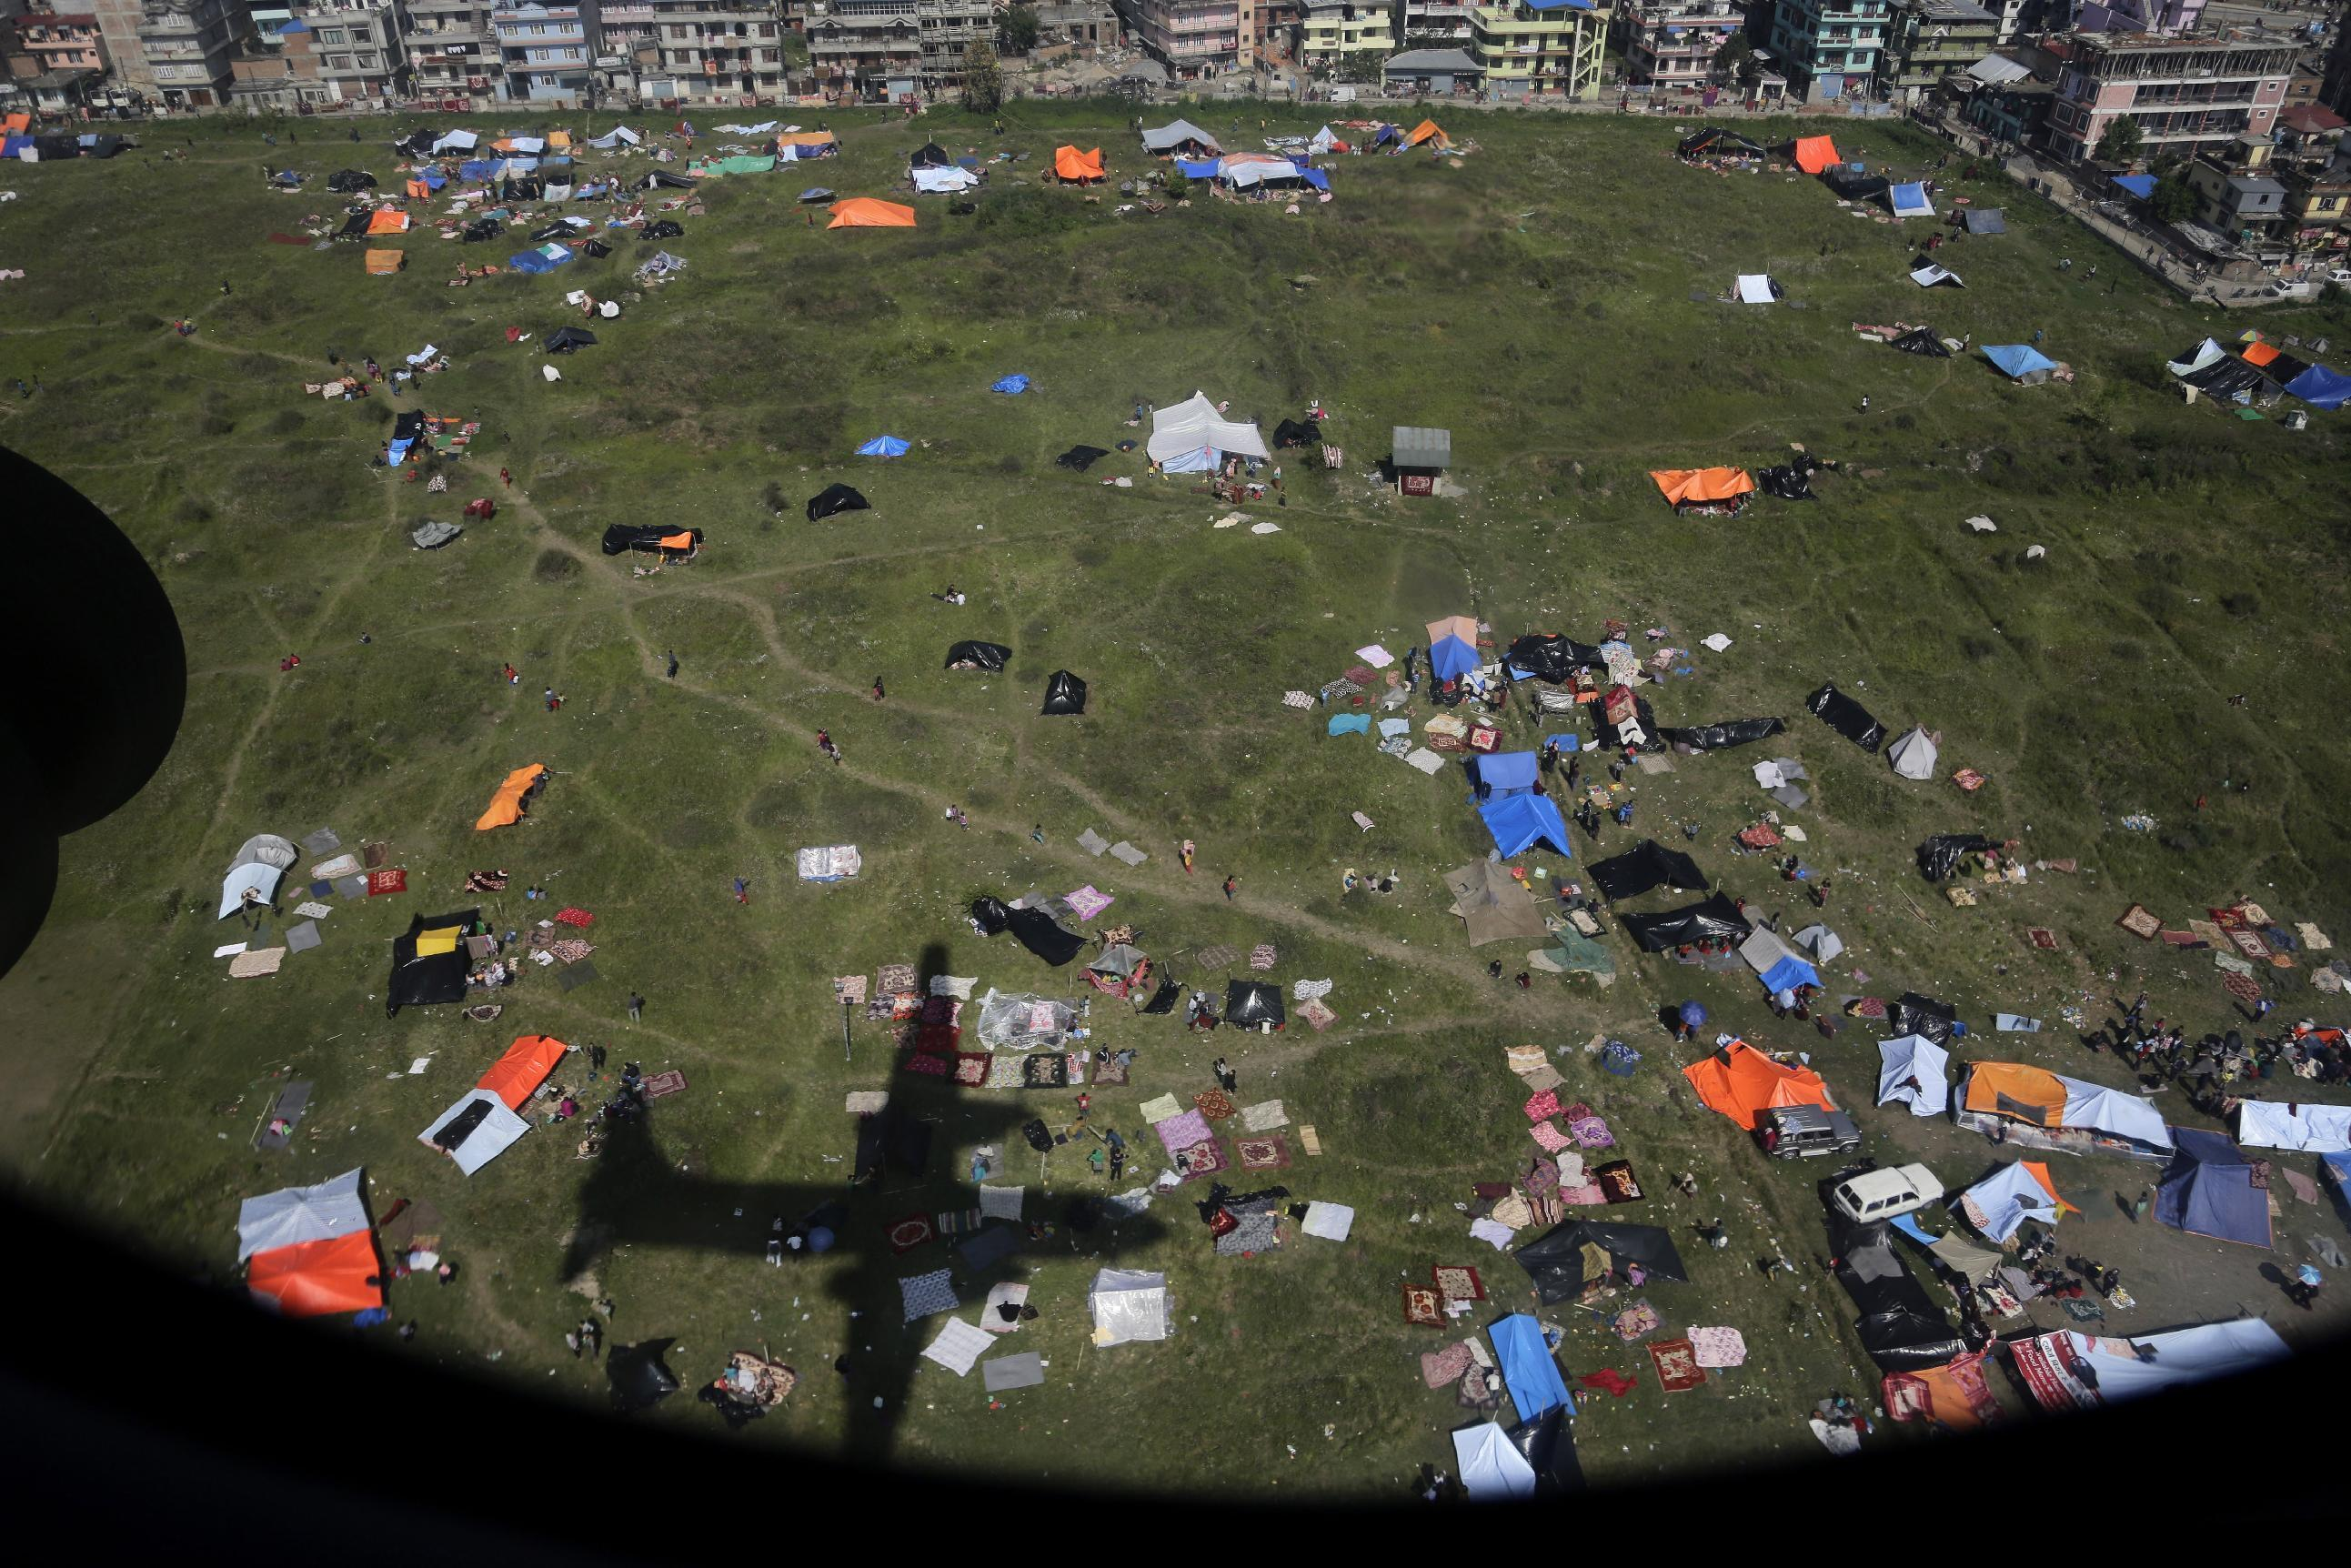 The Latest on Nepal Quake: Aid arriving as deaths top 4,000